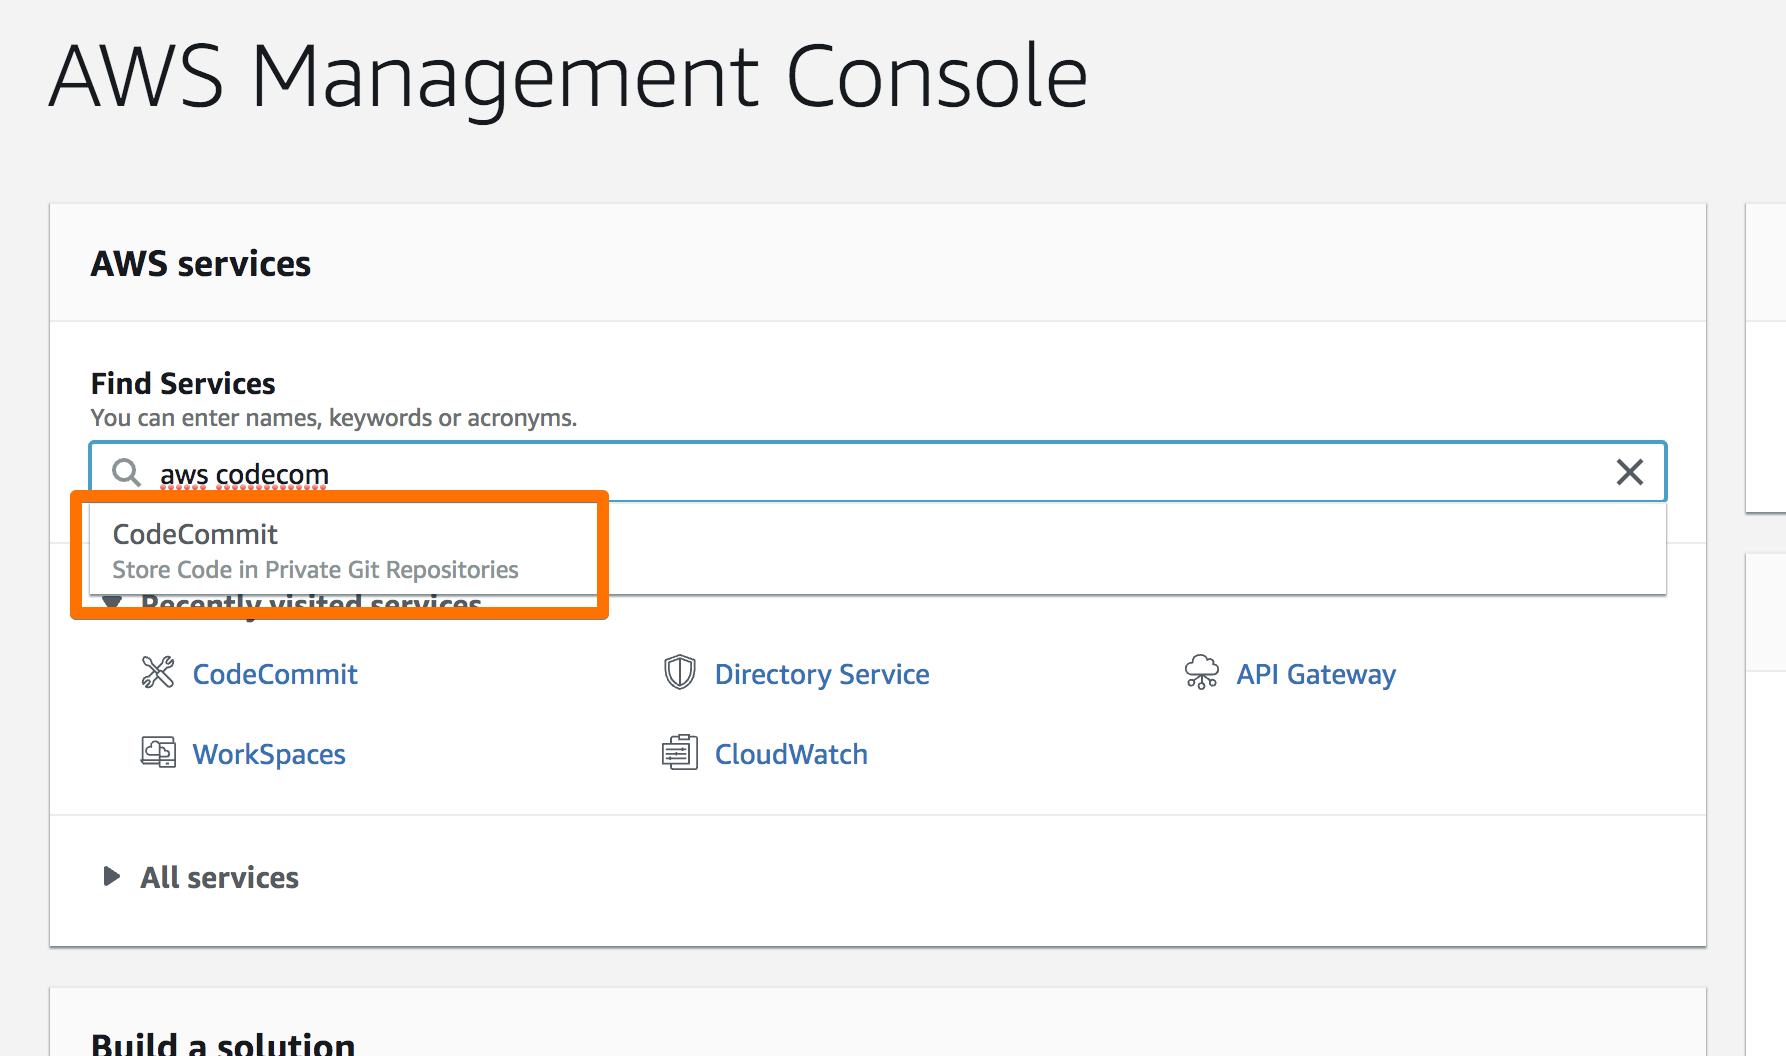 AWS Management Console 2019-08-29 12-05-16